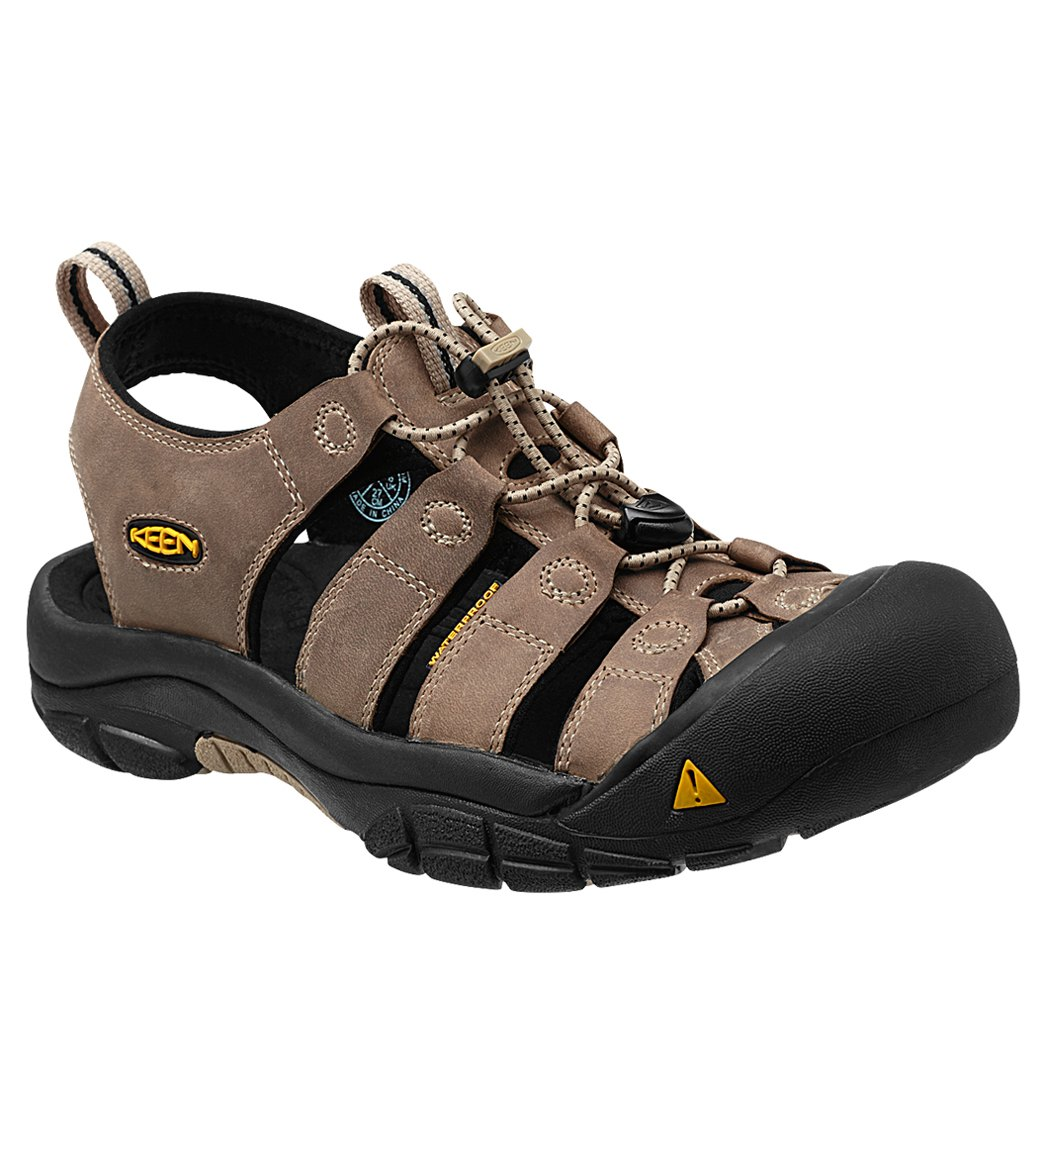 7663c67fcf1e Keen Men s Newport Water Shoes at SwimOutlet.com - Free Shipping